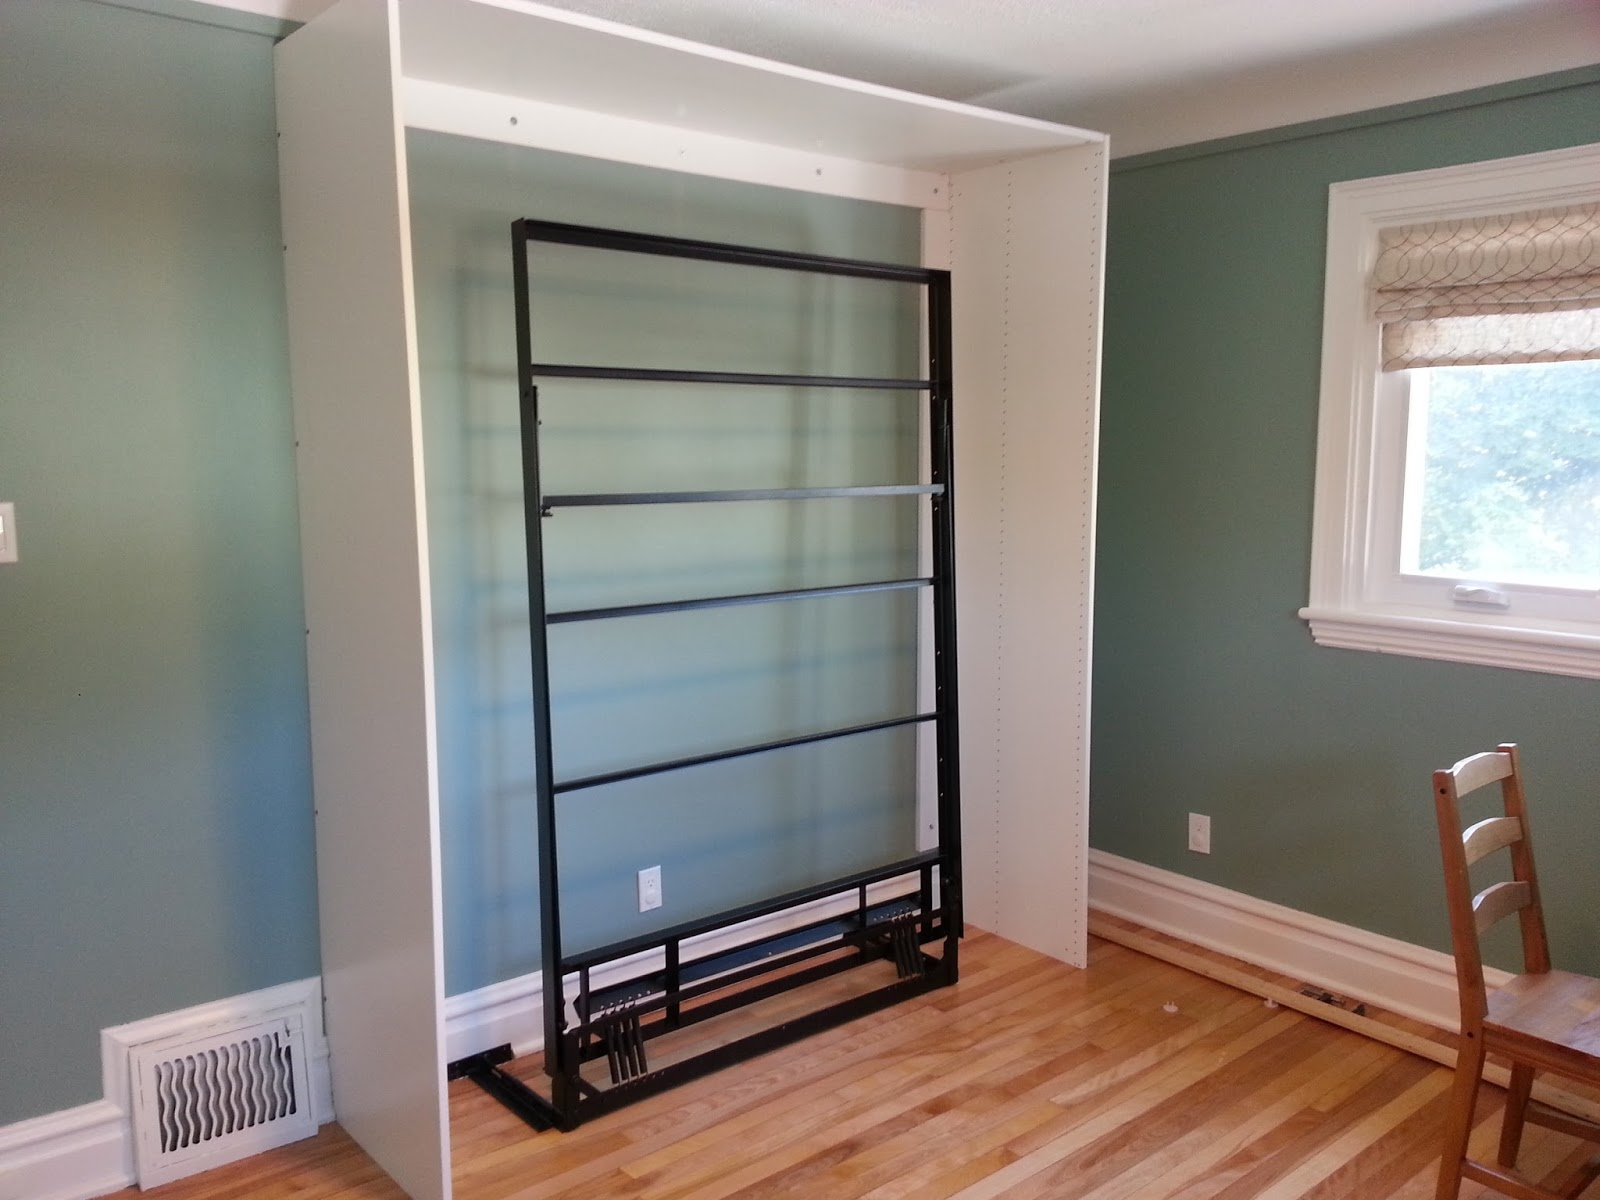 renovations and old houses diy ikea murphy bed 16490 | 20130818 171833